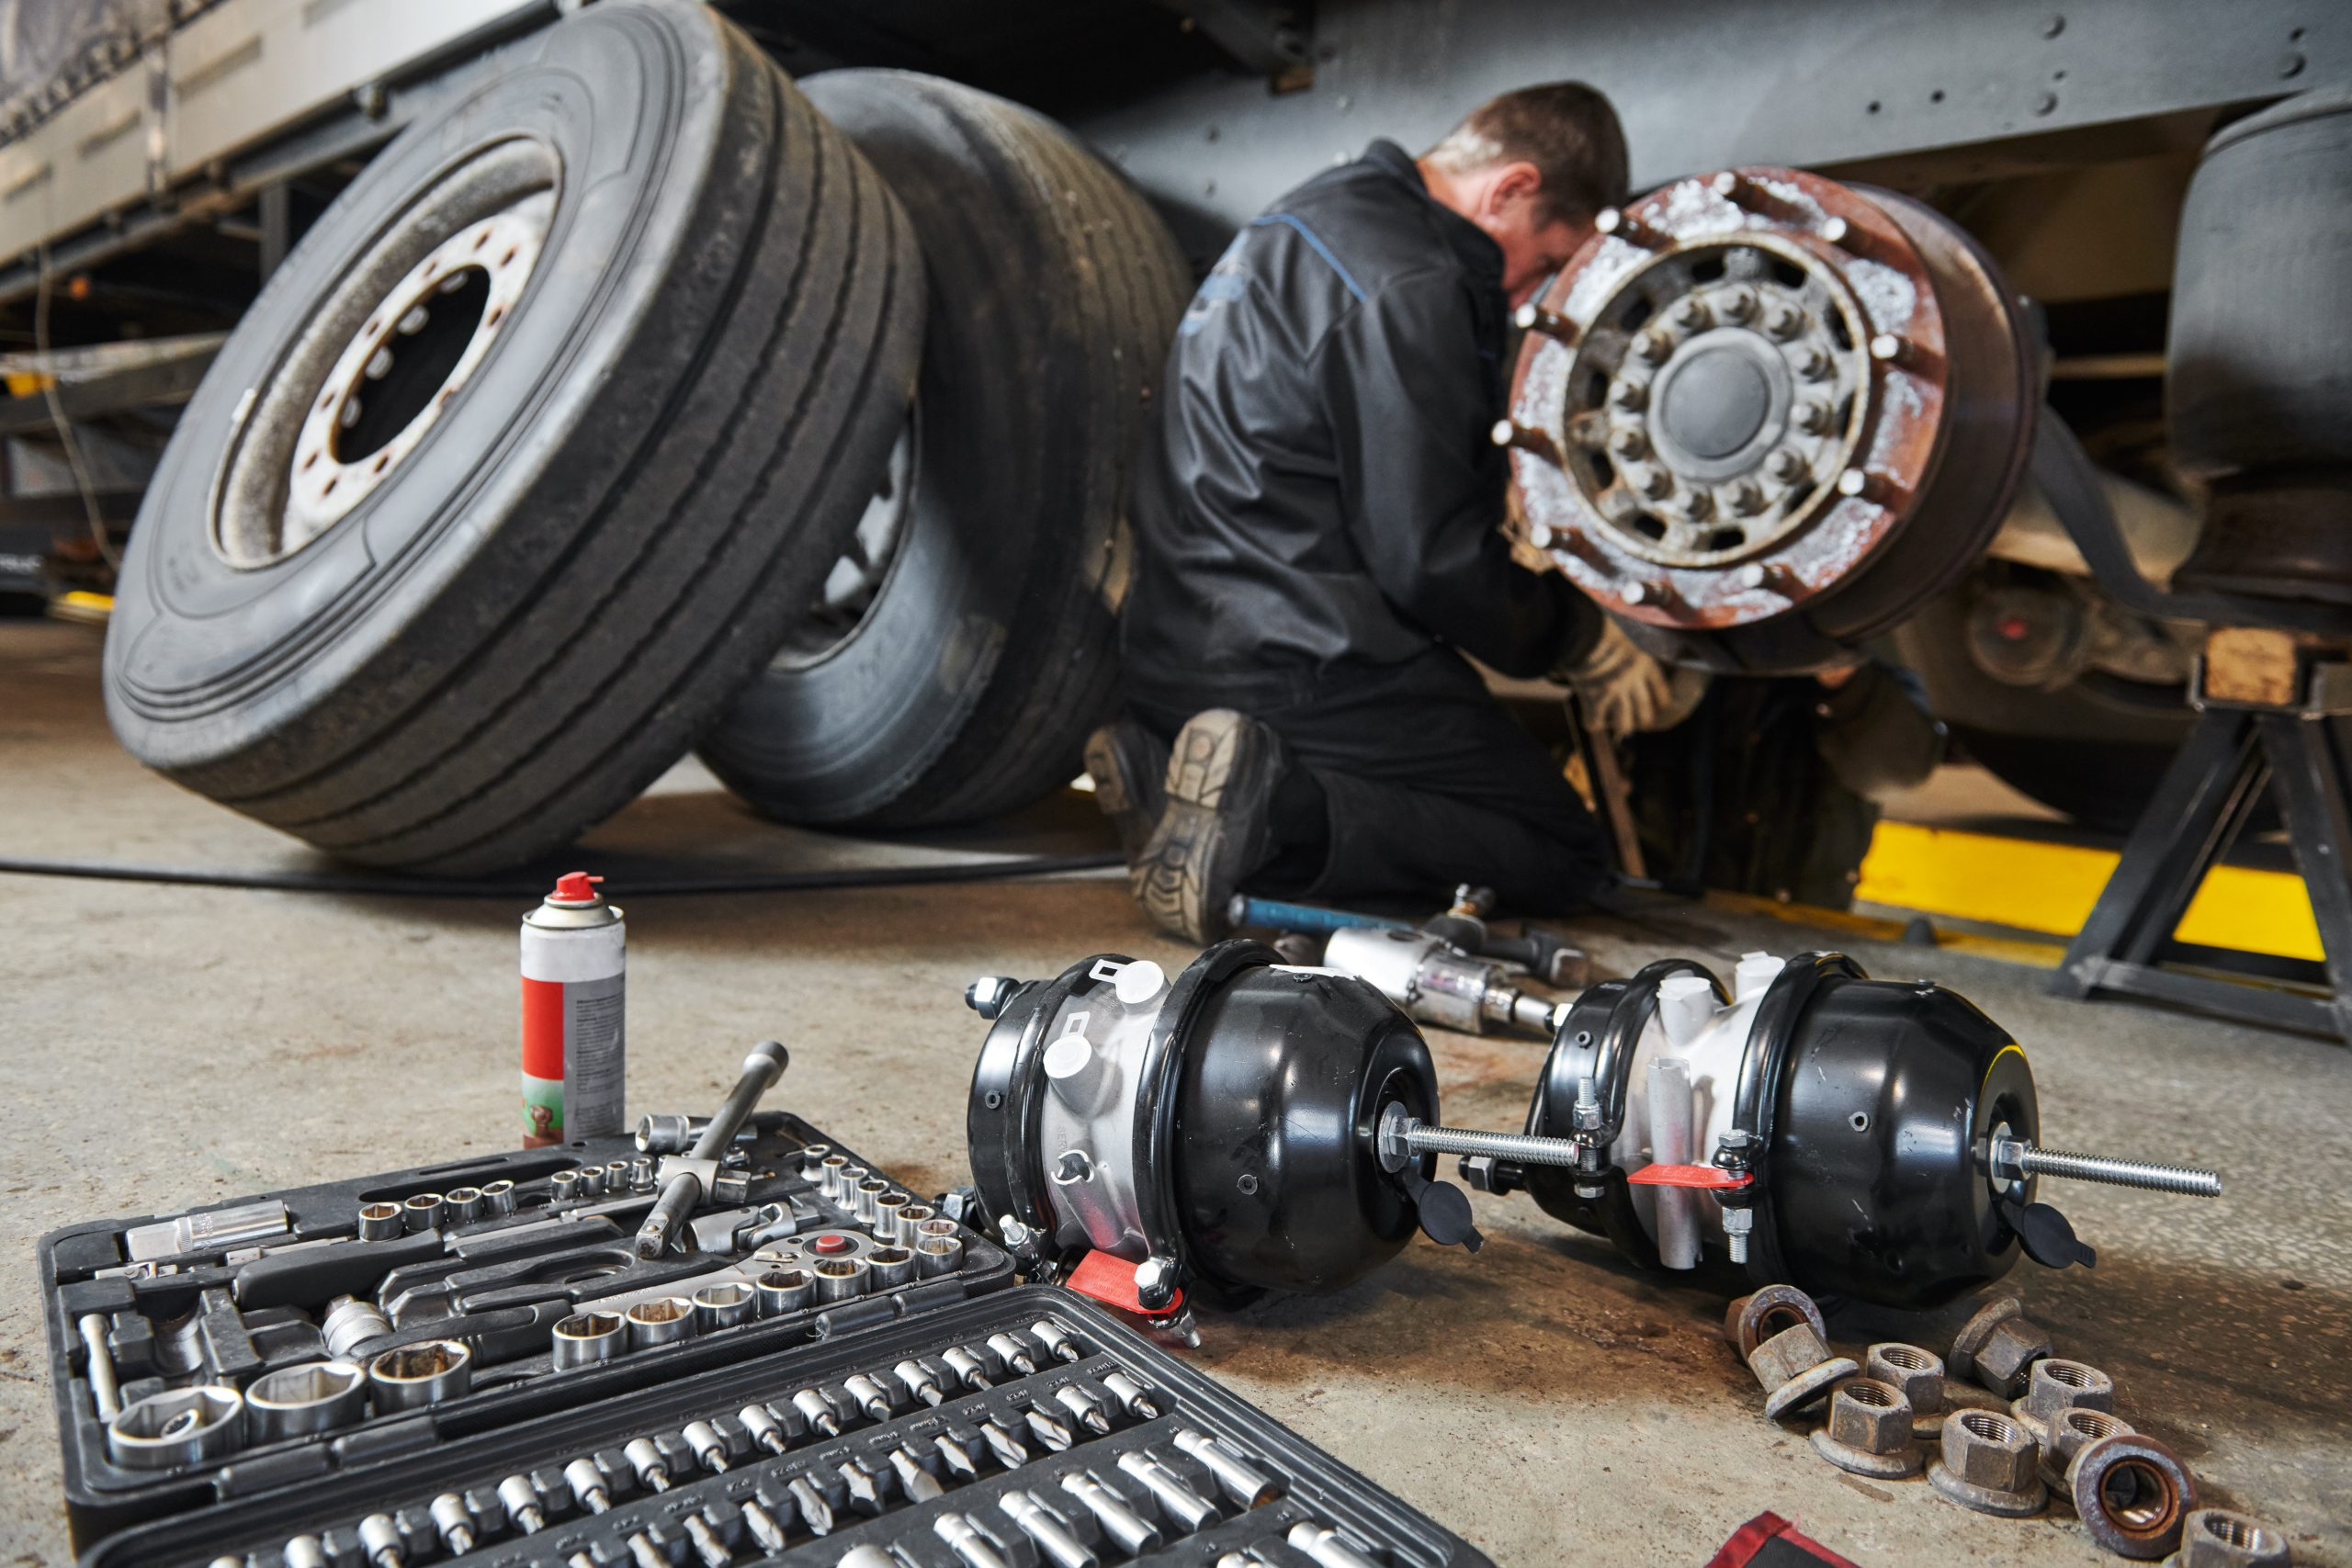 Working on heavy brake systems takes special skill, Brazel's has it.